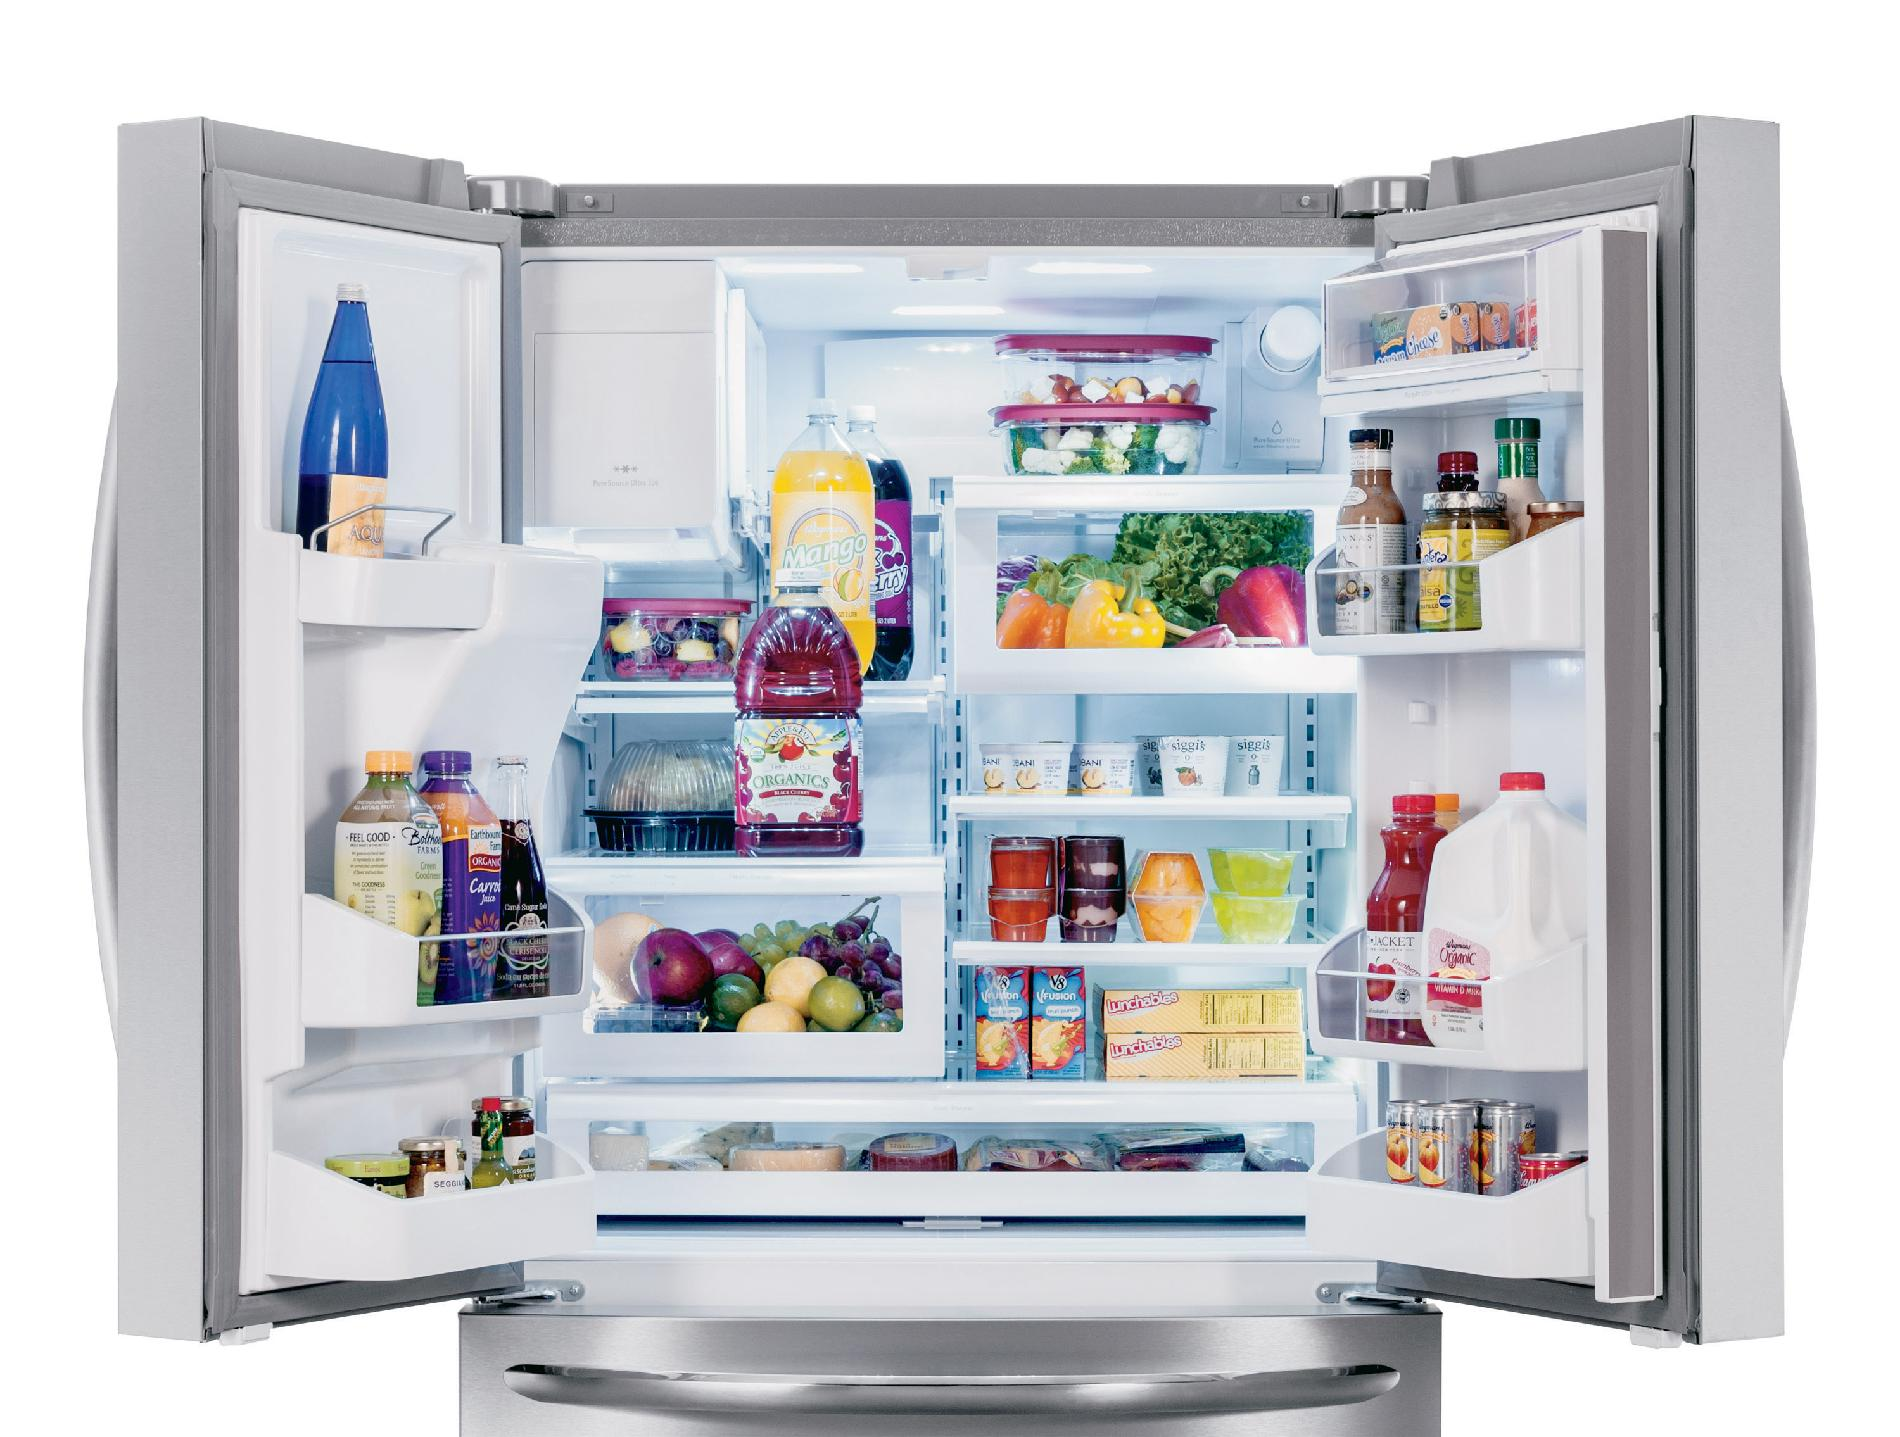 Frigidaire Gallery Gallery 27.9 cu. ft. French Door Refrigerator - Stainless Steel